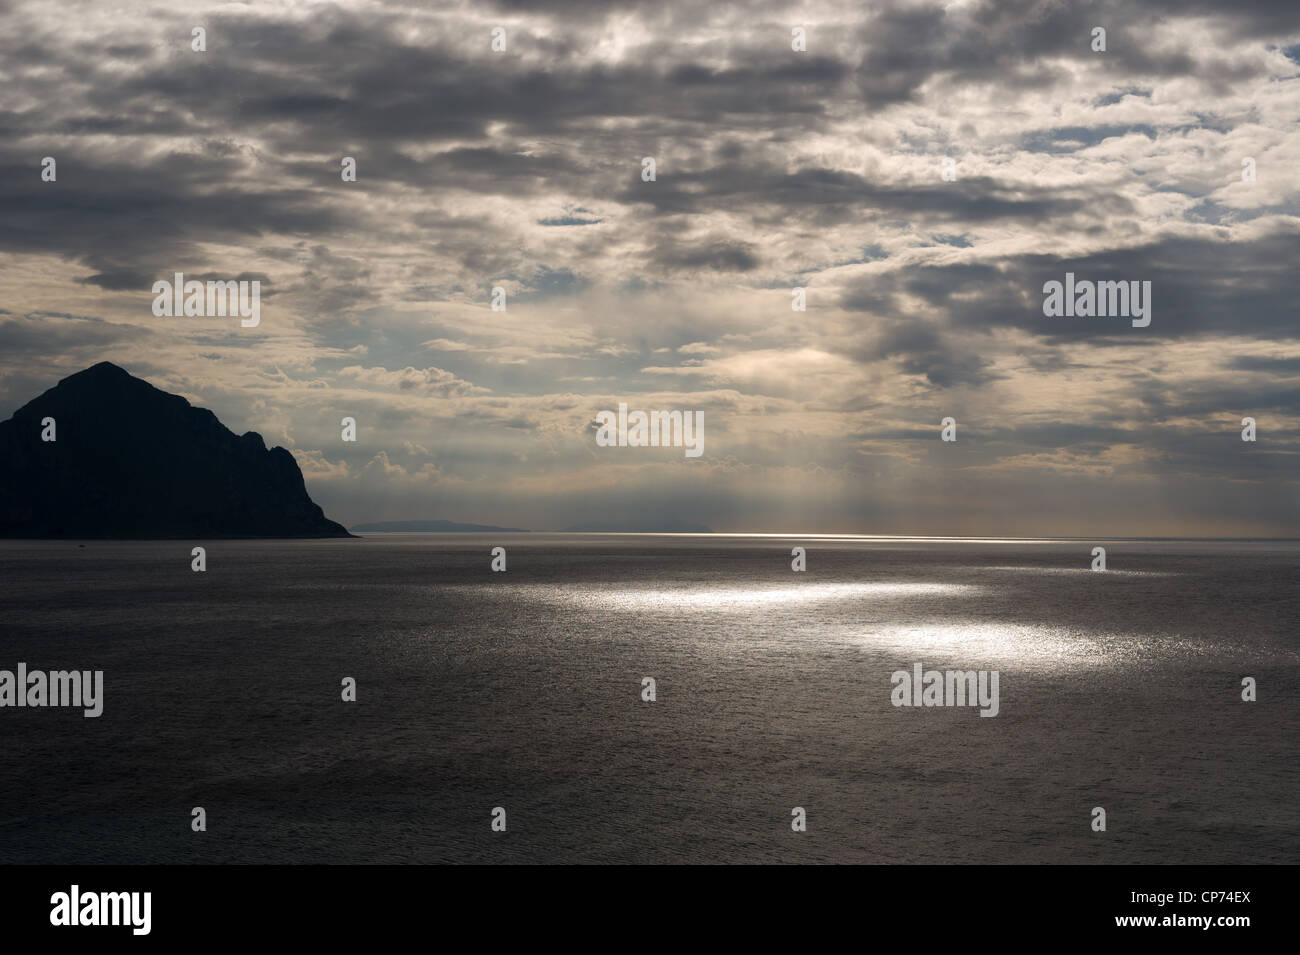 Spot lights on the sea in Sicily - Stock Image